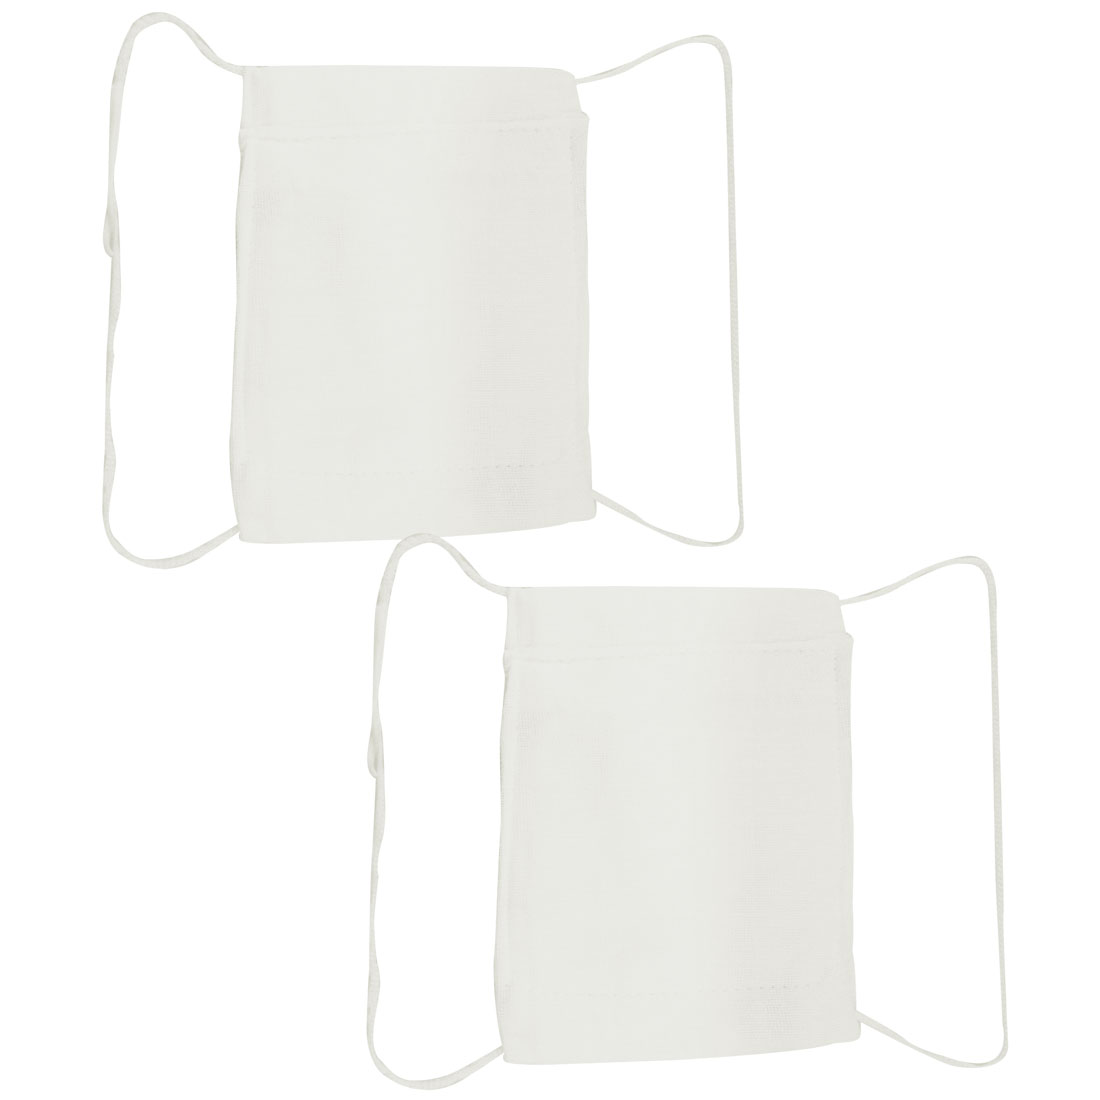 14cm x 18cm Washable White Protect Soft Cotton Face Mouth Mask 2 Pcs